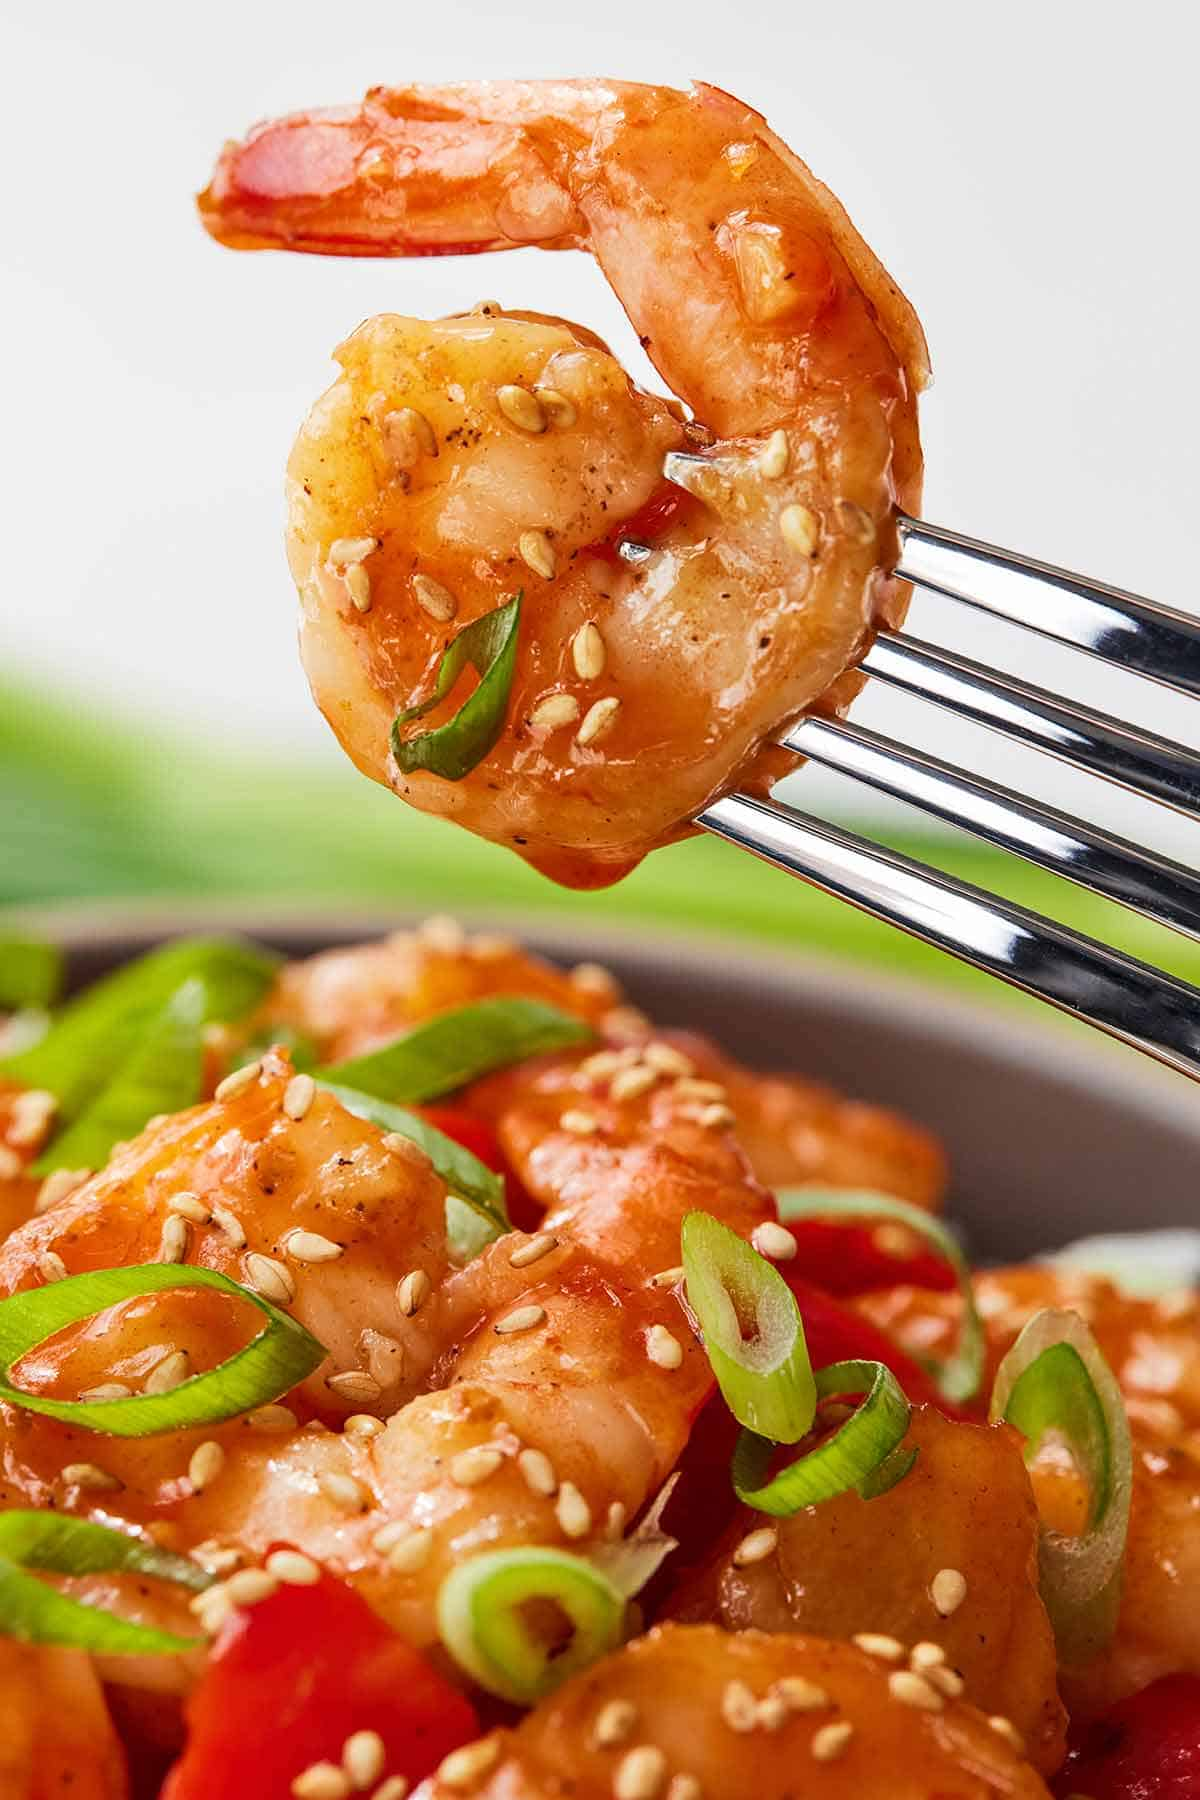 A fork holding up a single sweet and sour shrimp.